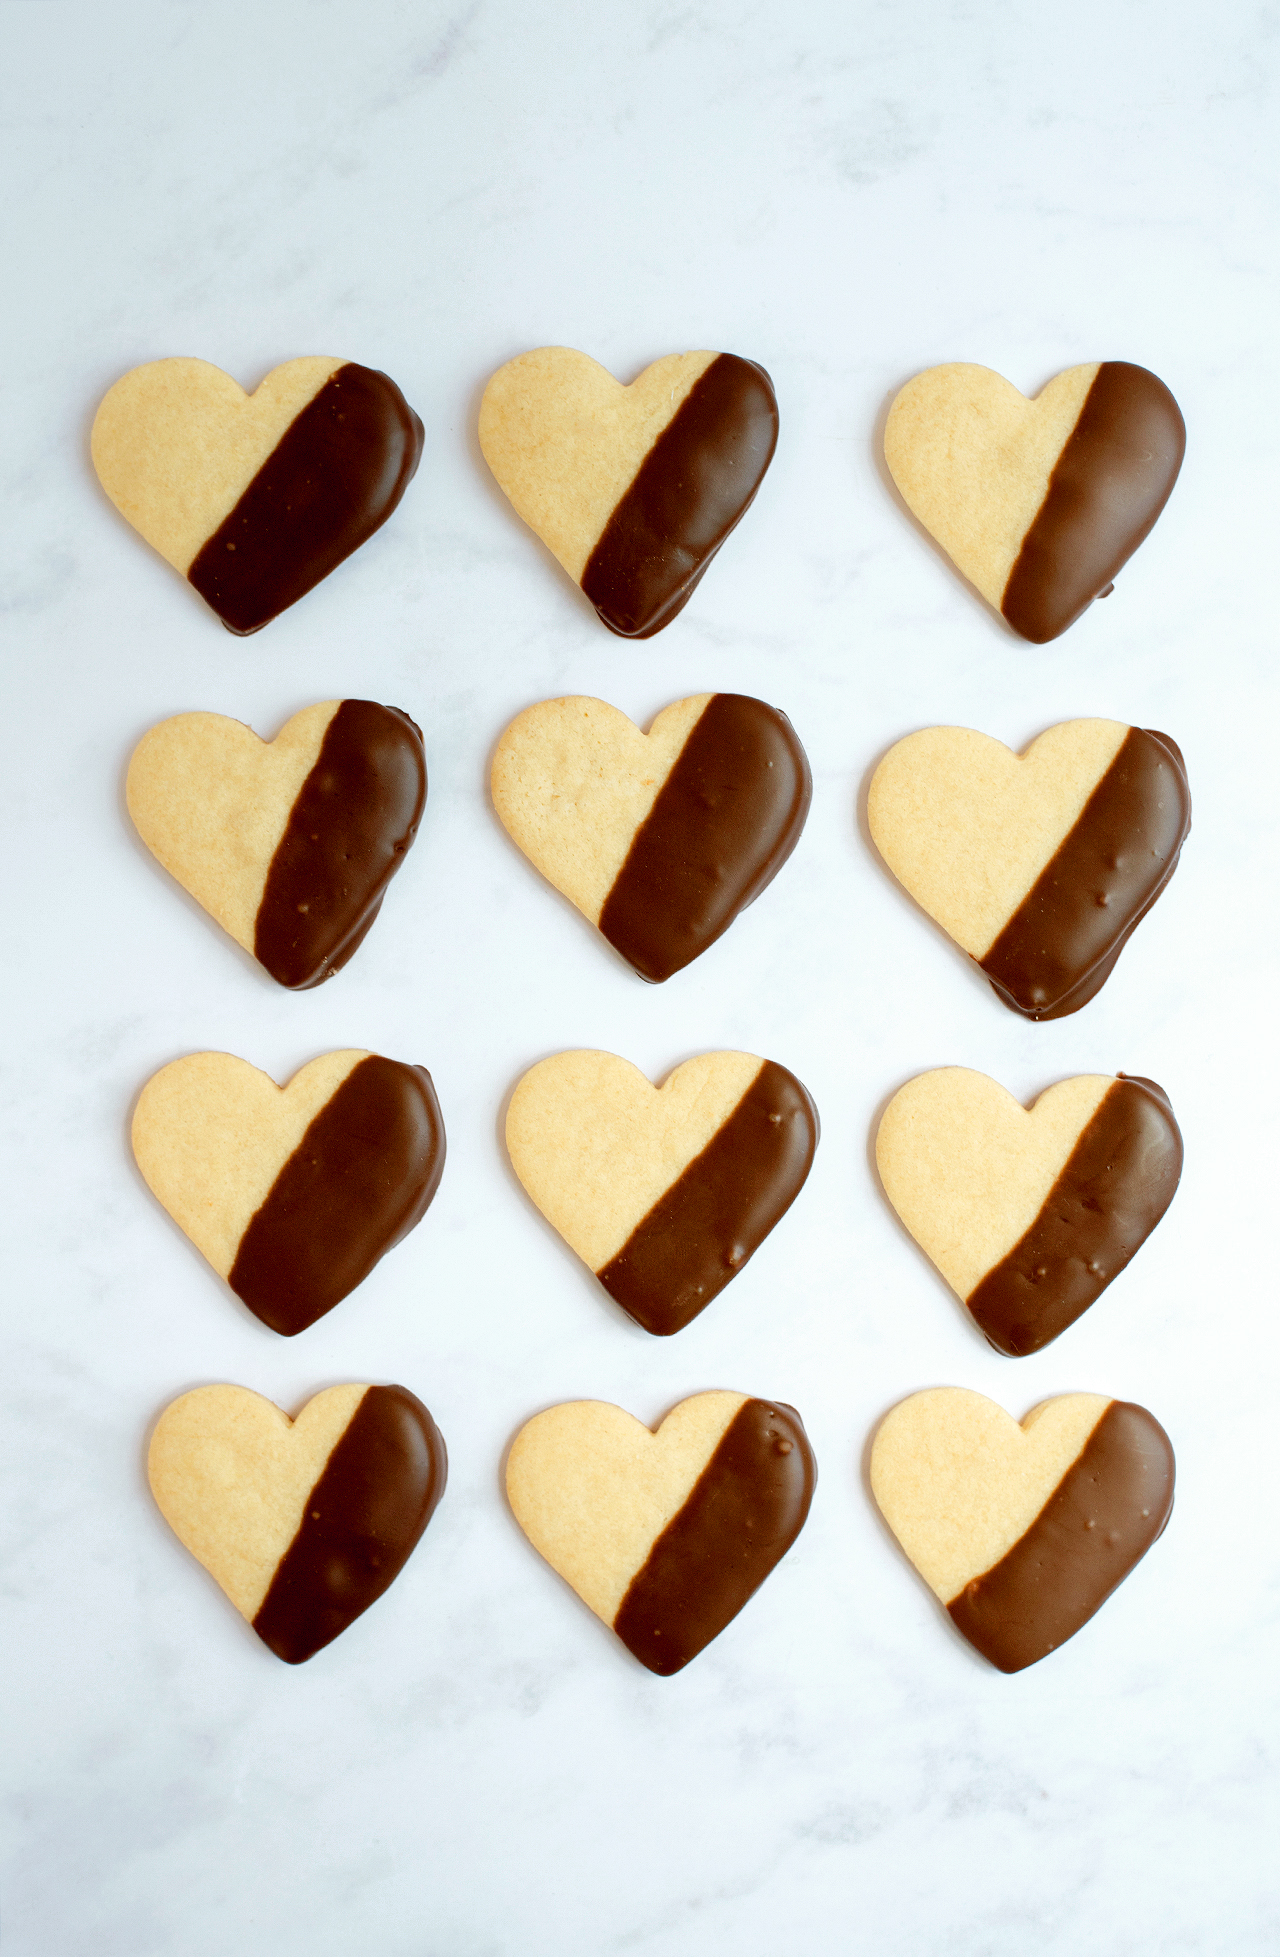 rows of chocolate-dipped heart-shaped cookies